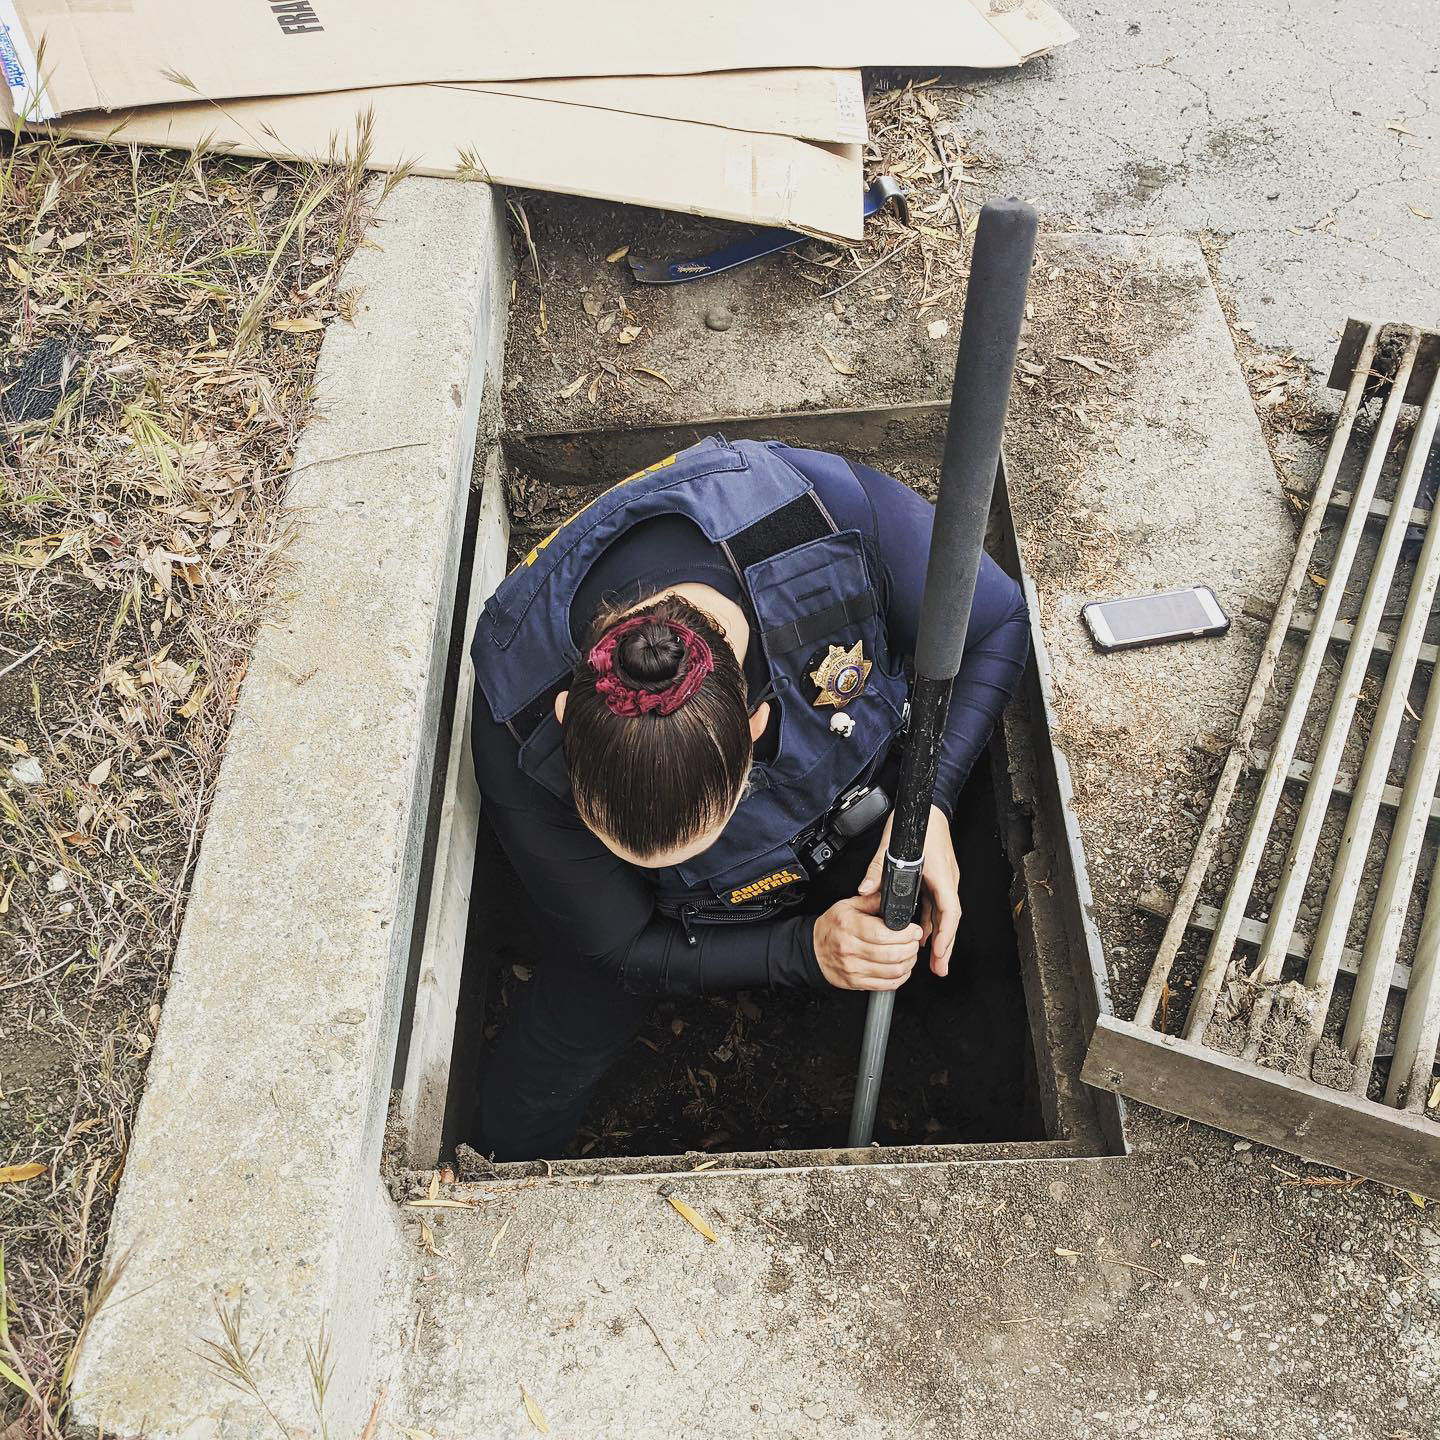 Animal control officer helps ducklings out of drain